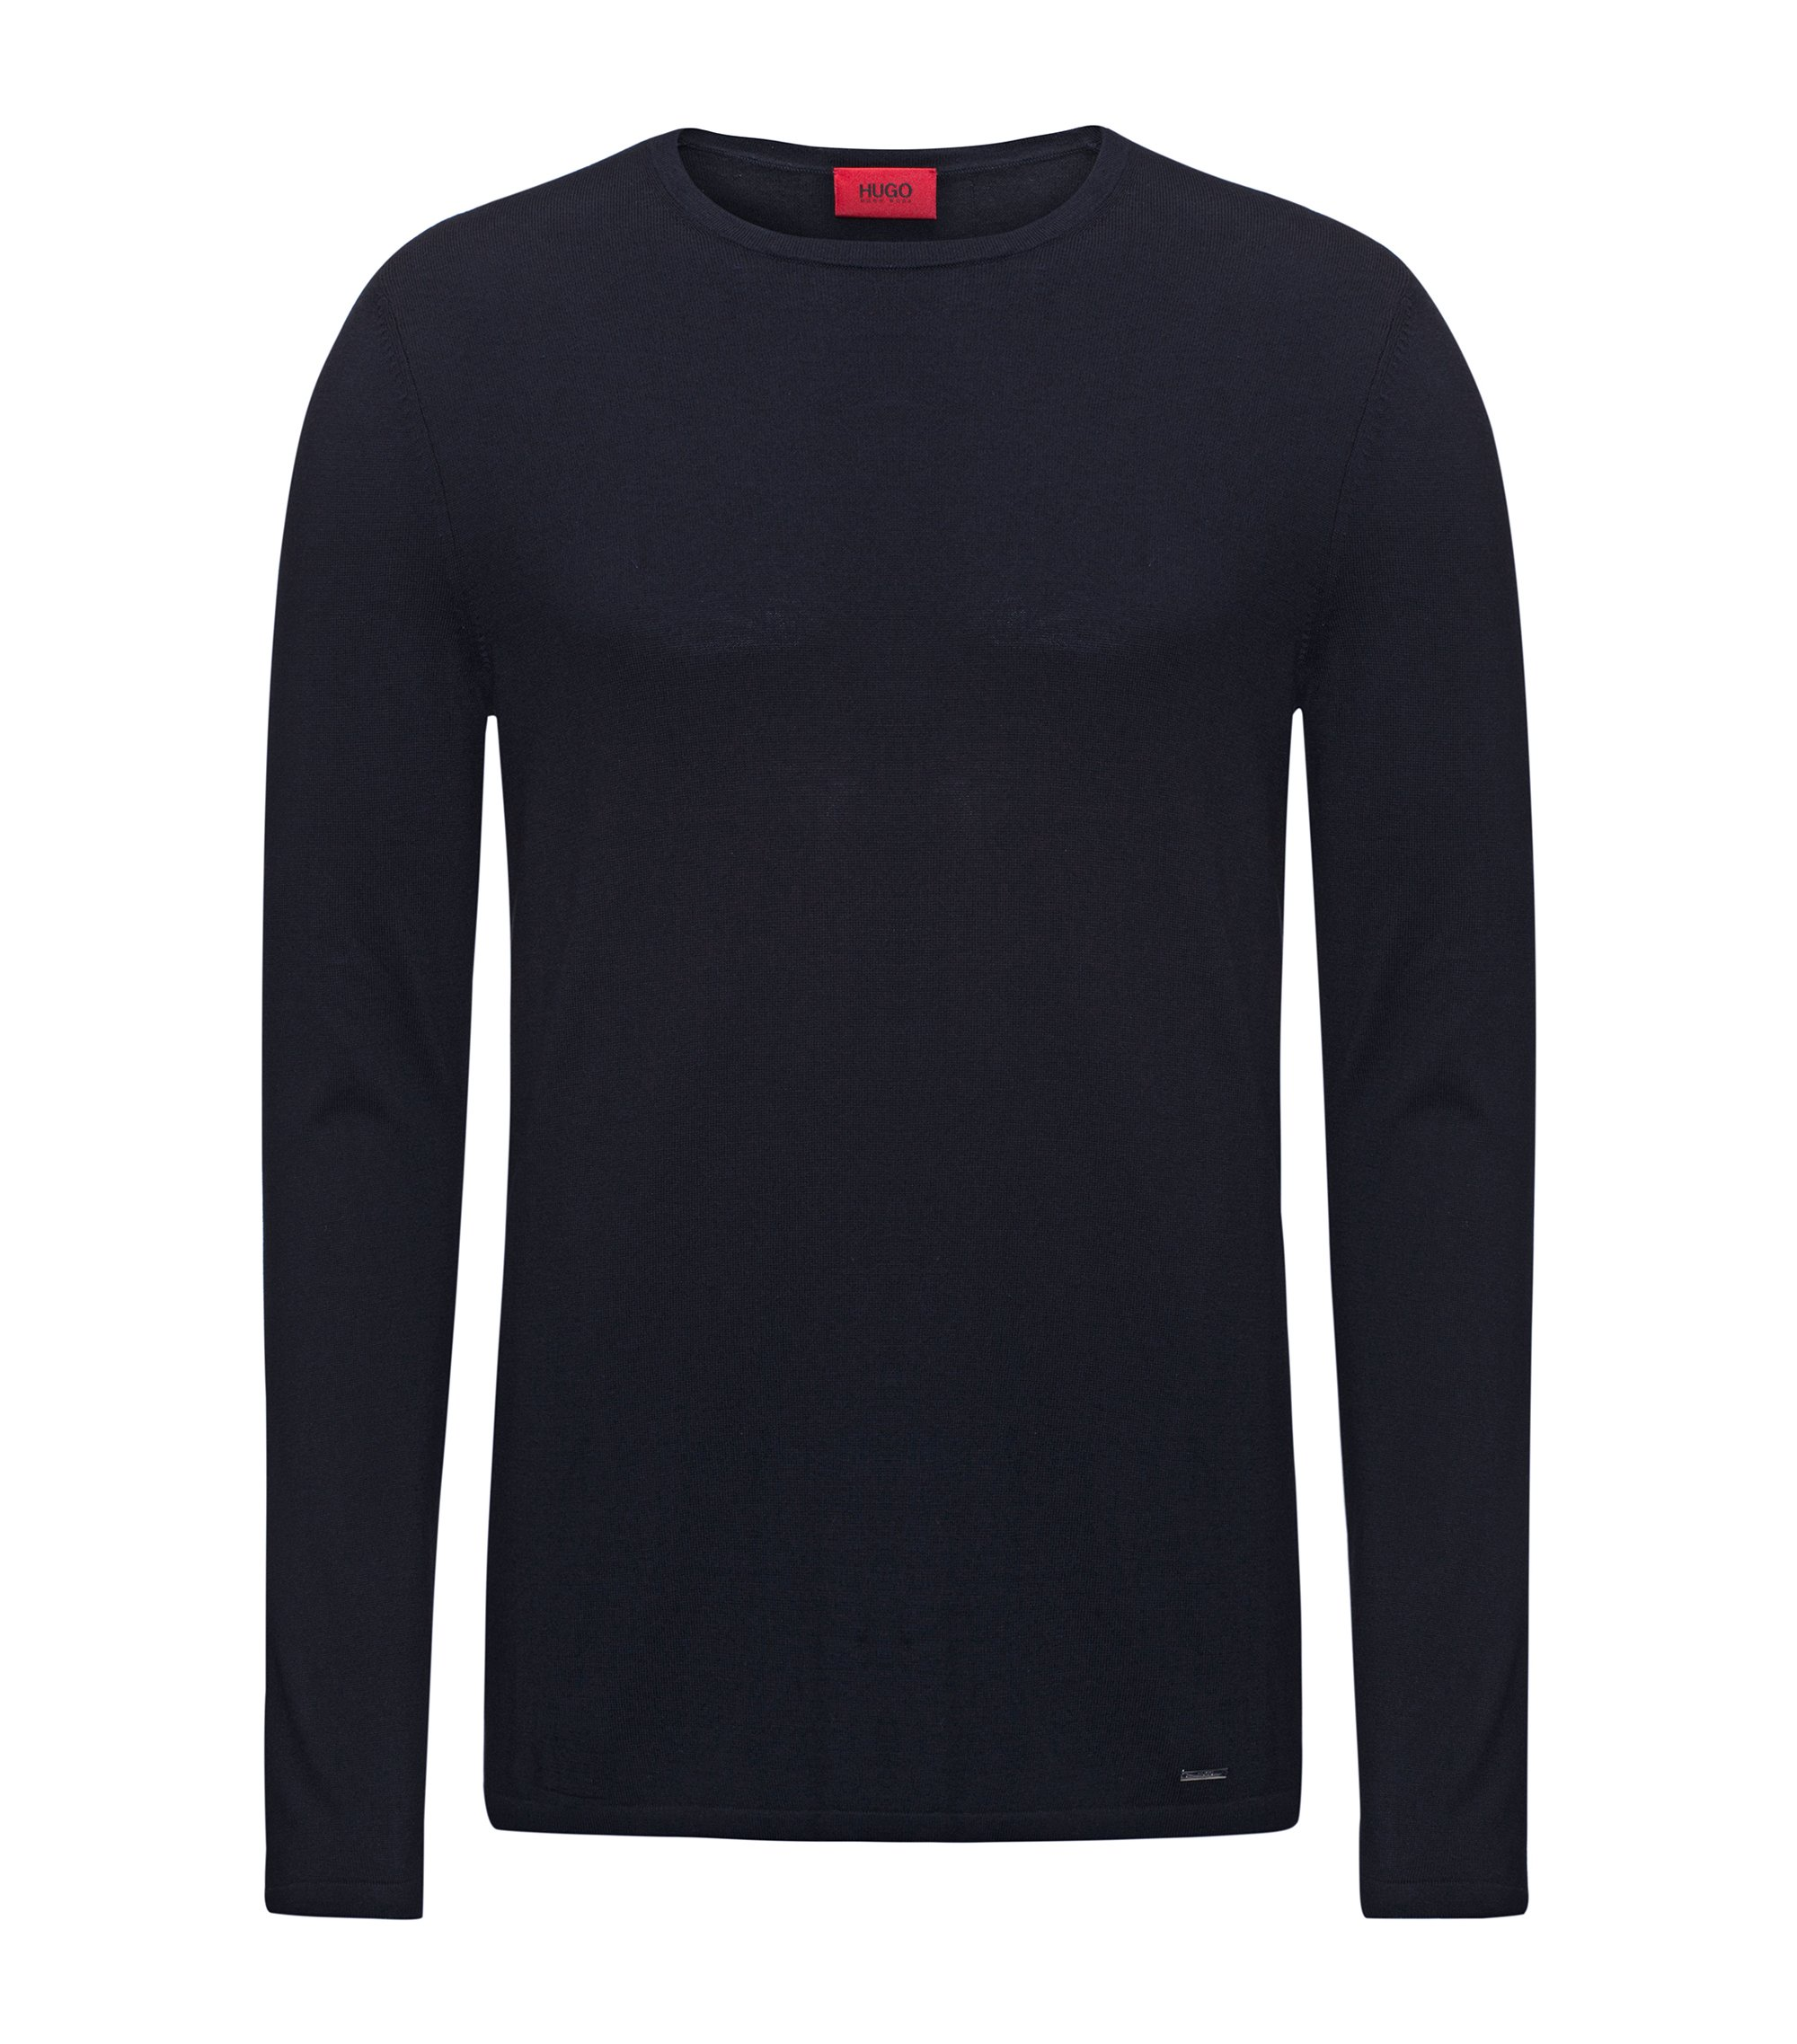 Crew-neck sweater in a cotton blend, Dark Blue